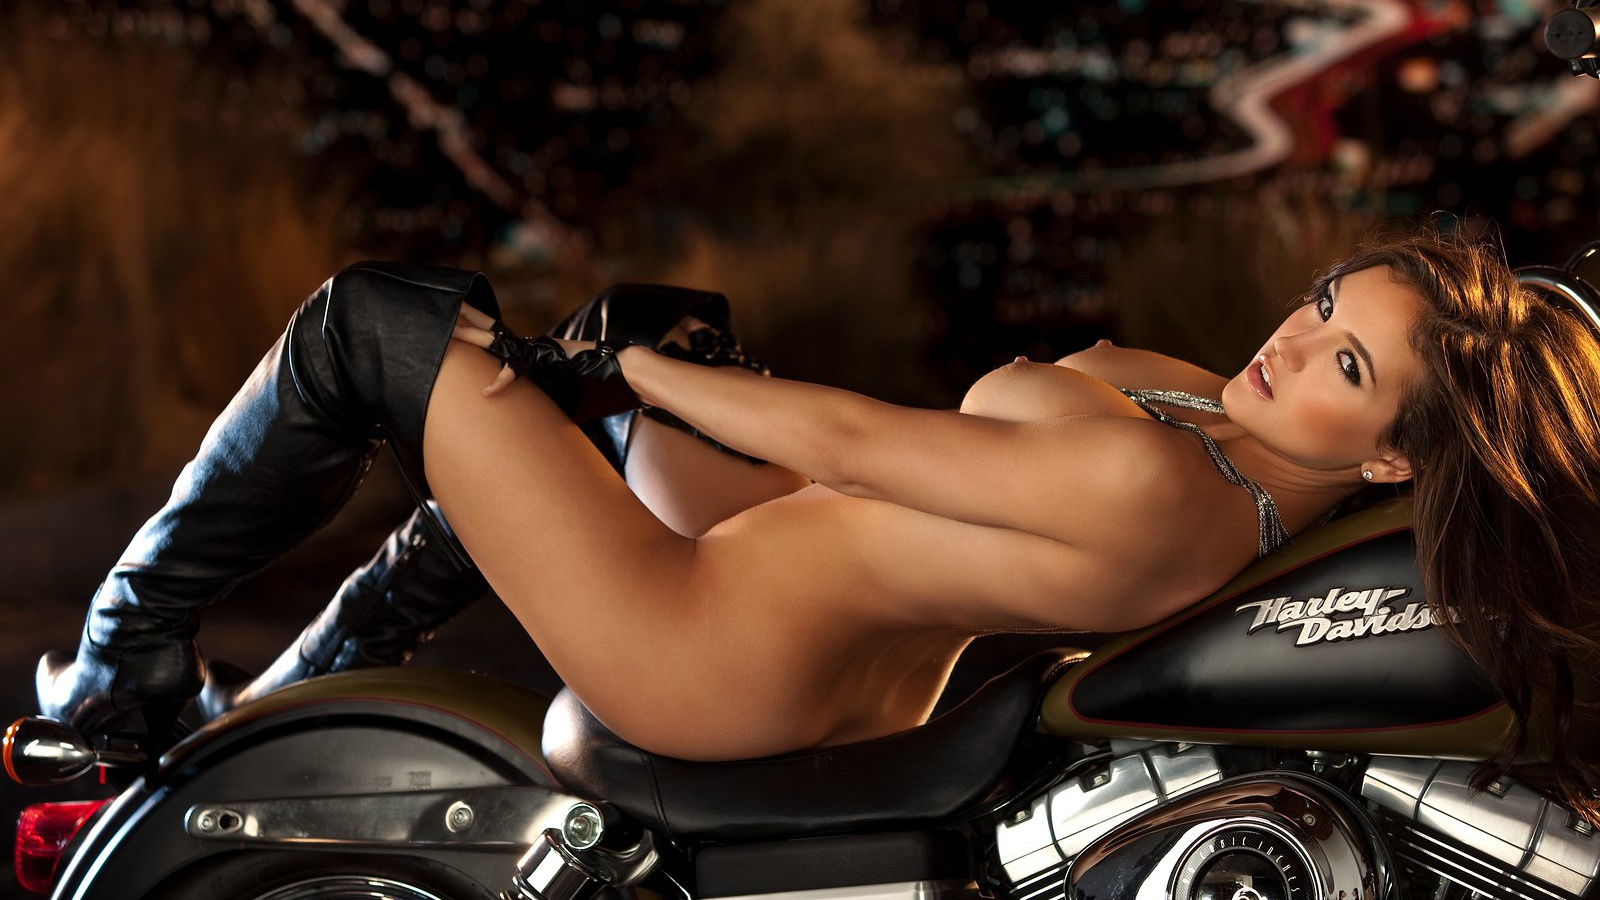 Opinion, Nude lady on a harley phrase